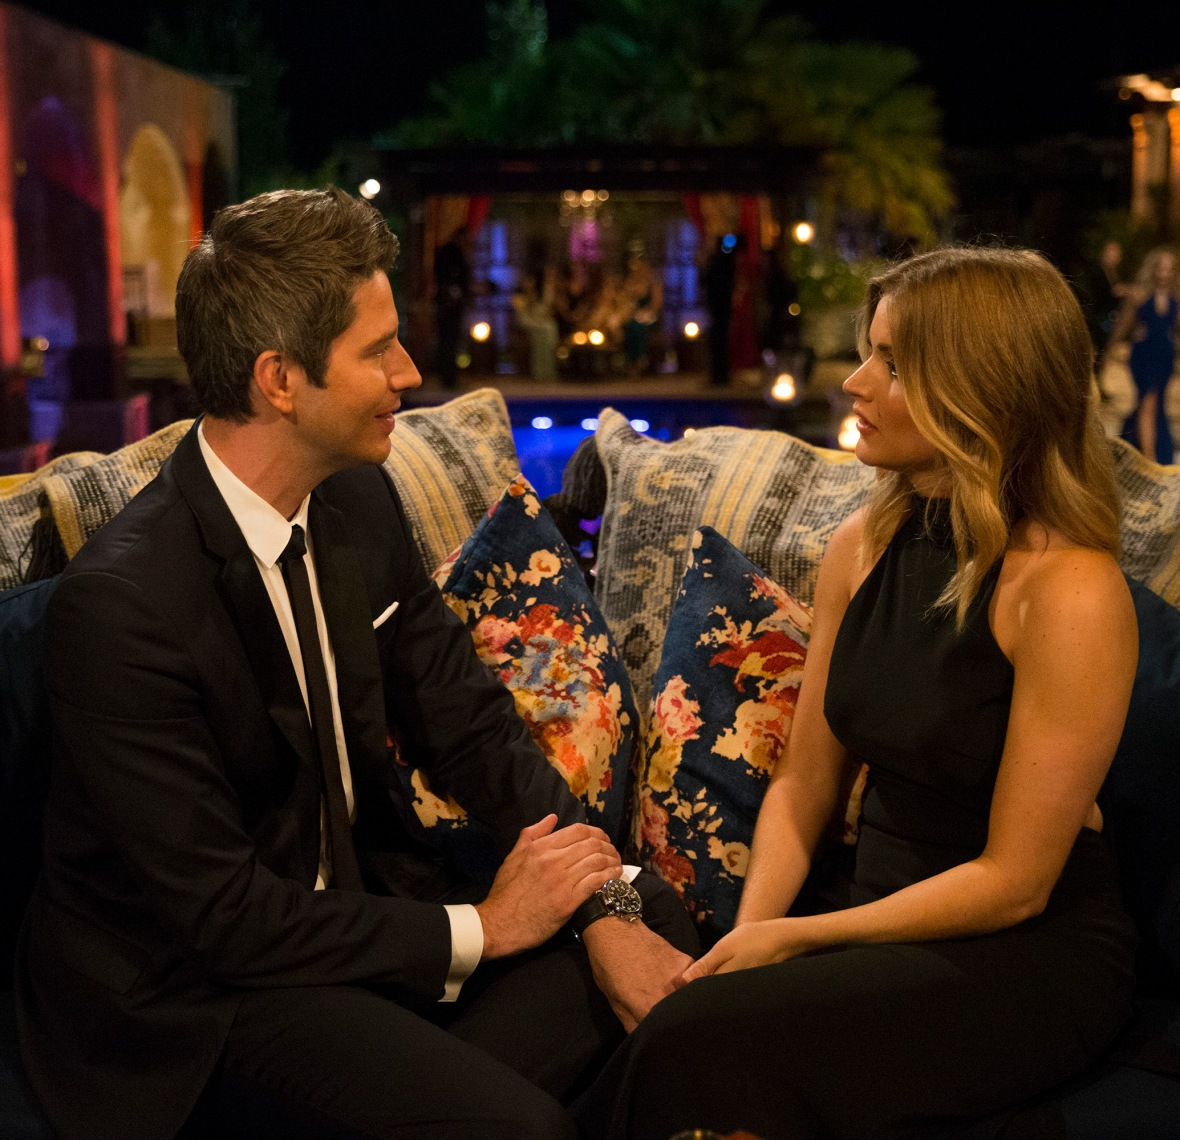 chelsea and arie the bachelor getty images